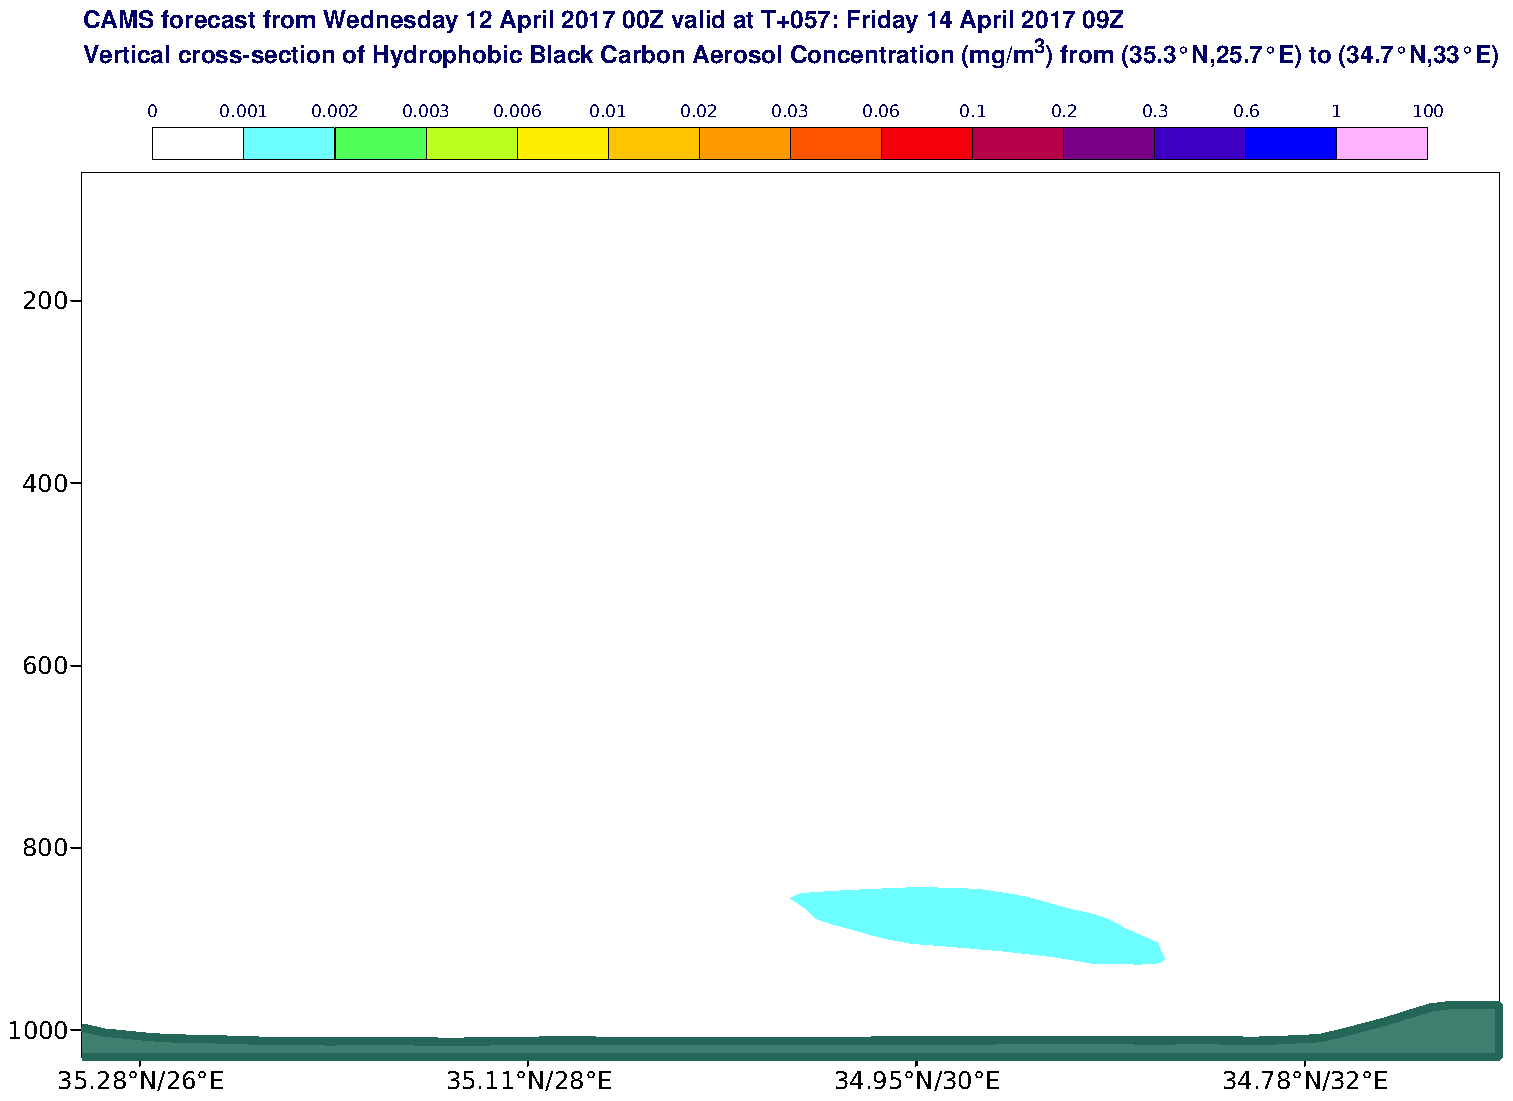 Vertical cross-section of Hydrophobic Black Carbon Aerosol Concentration (mg/m3) valid at T57 - 2017-04-14 09:00